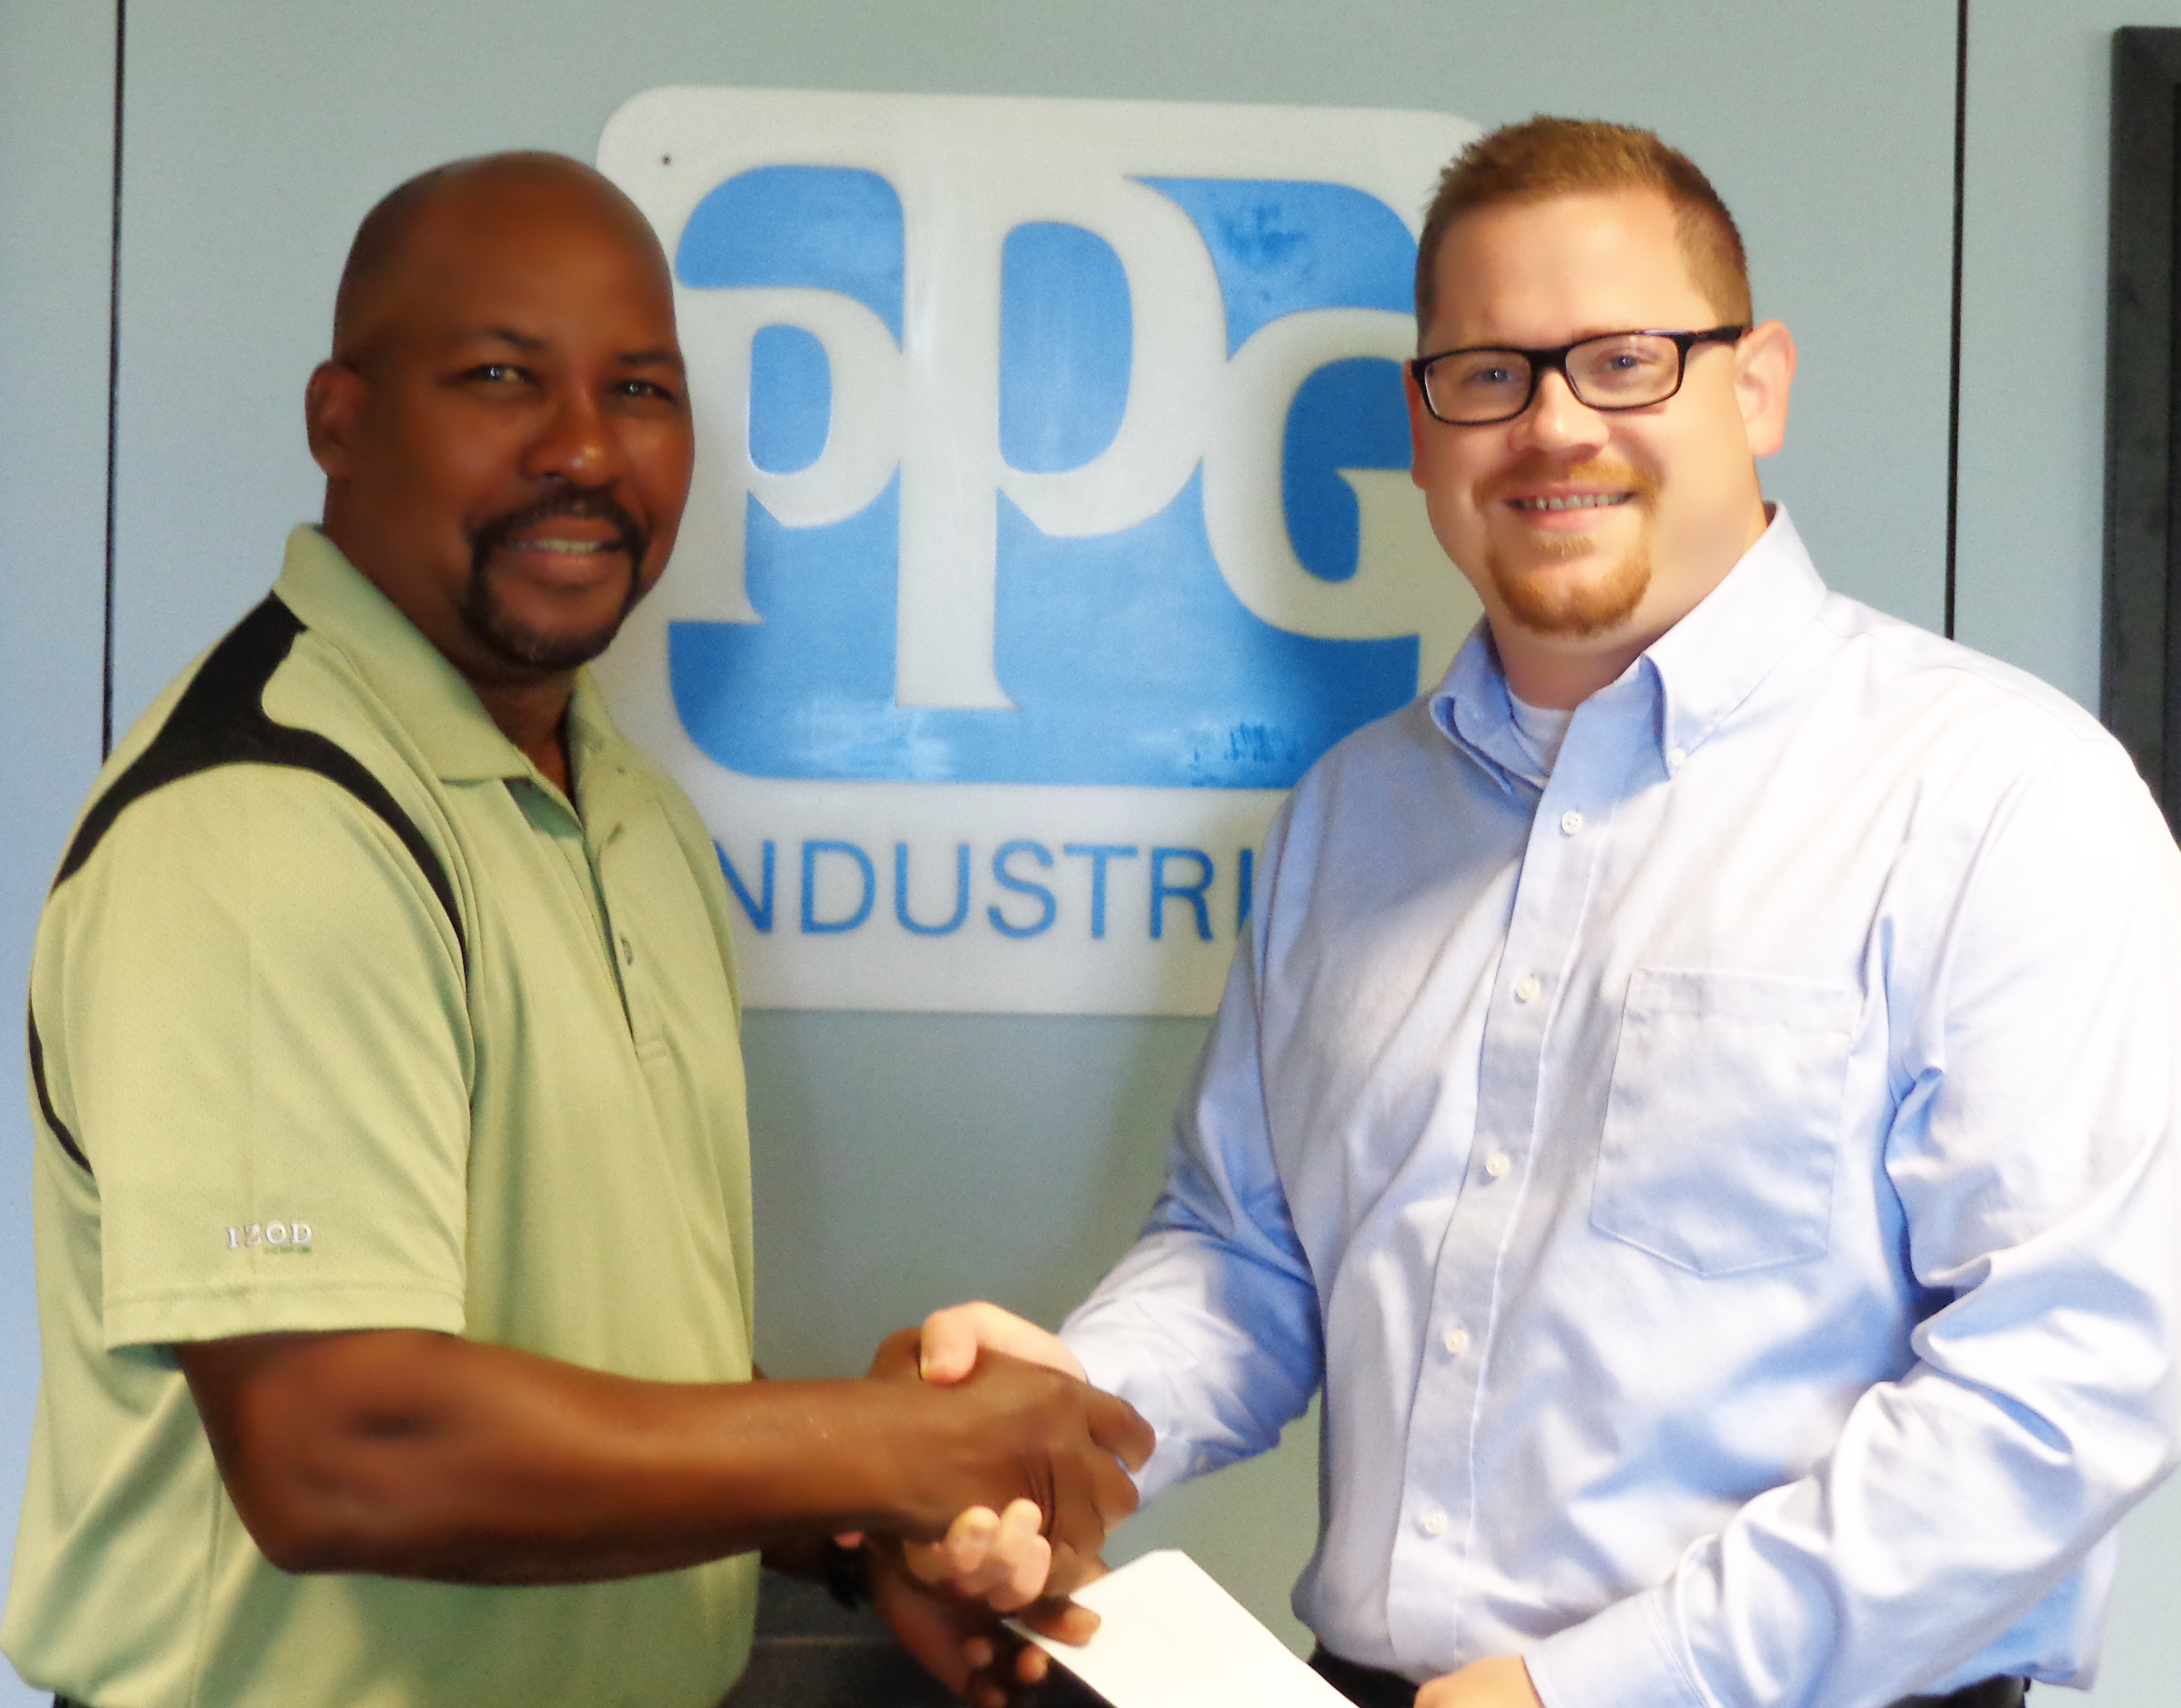 Ppg Innovative Classroom Grants ~ Ppg donates for delaware ohio area progra